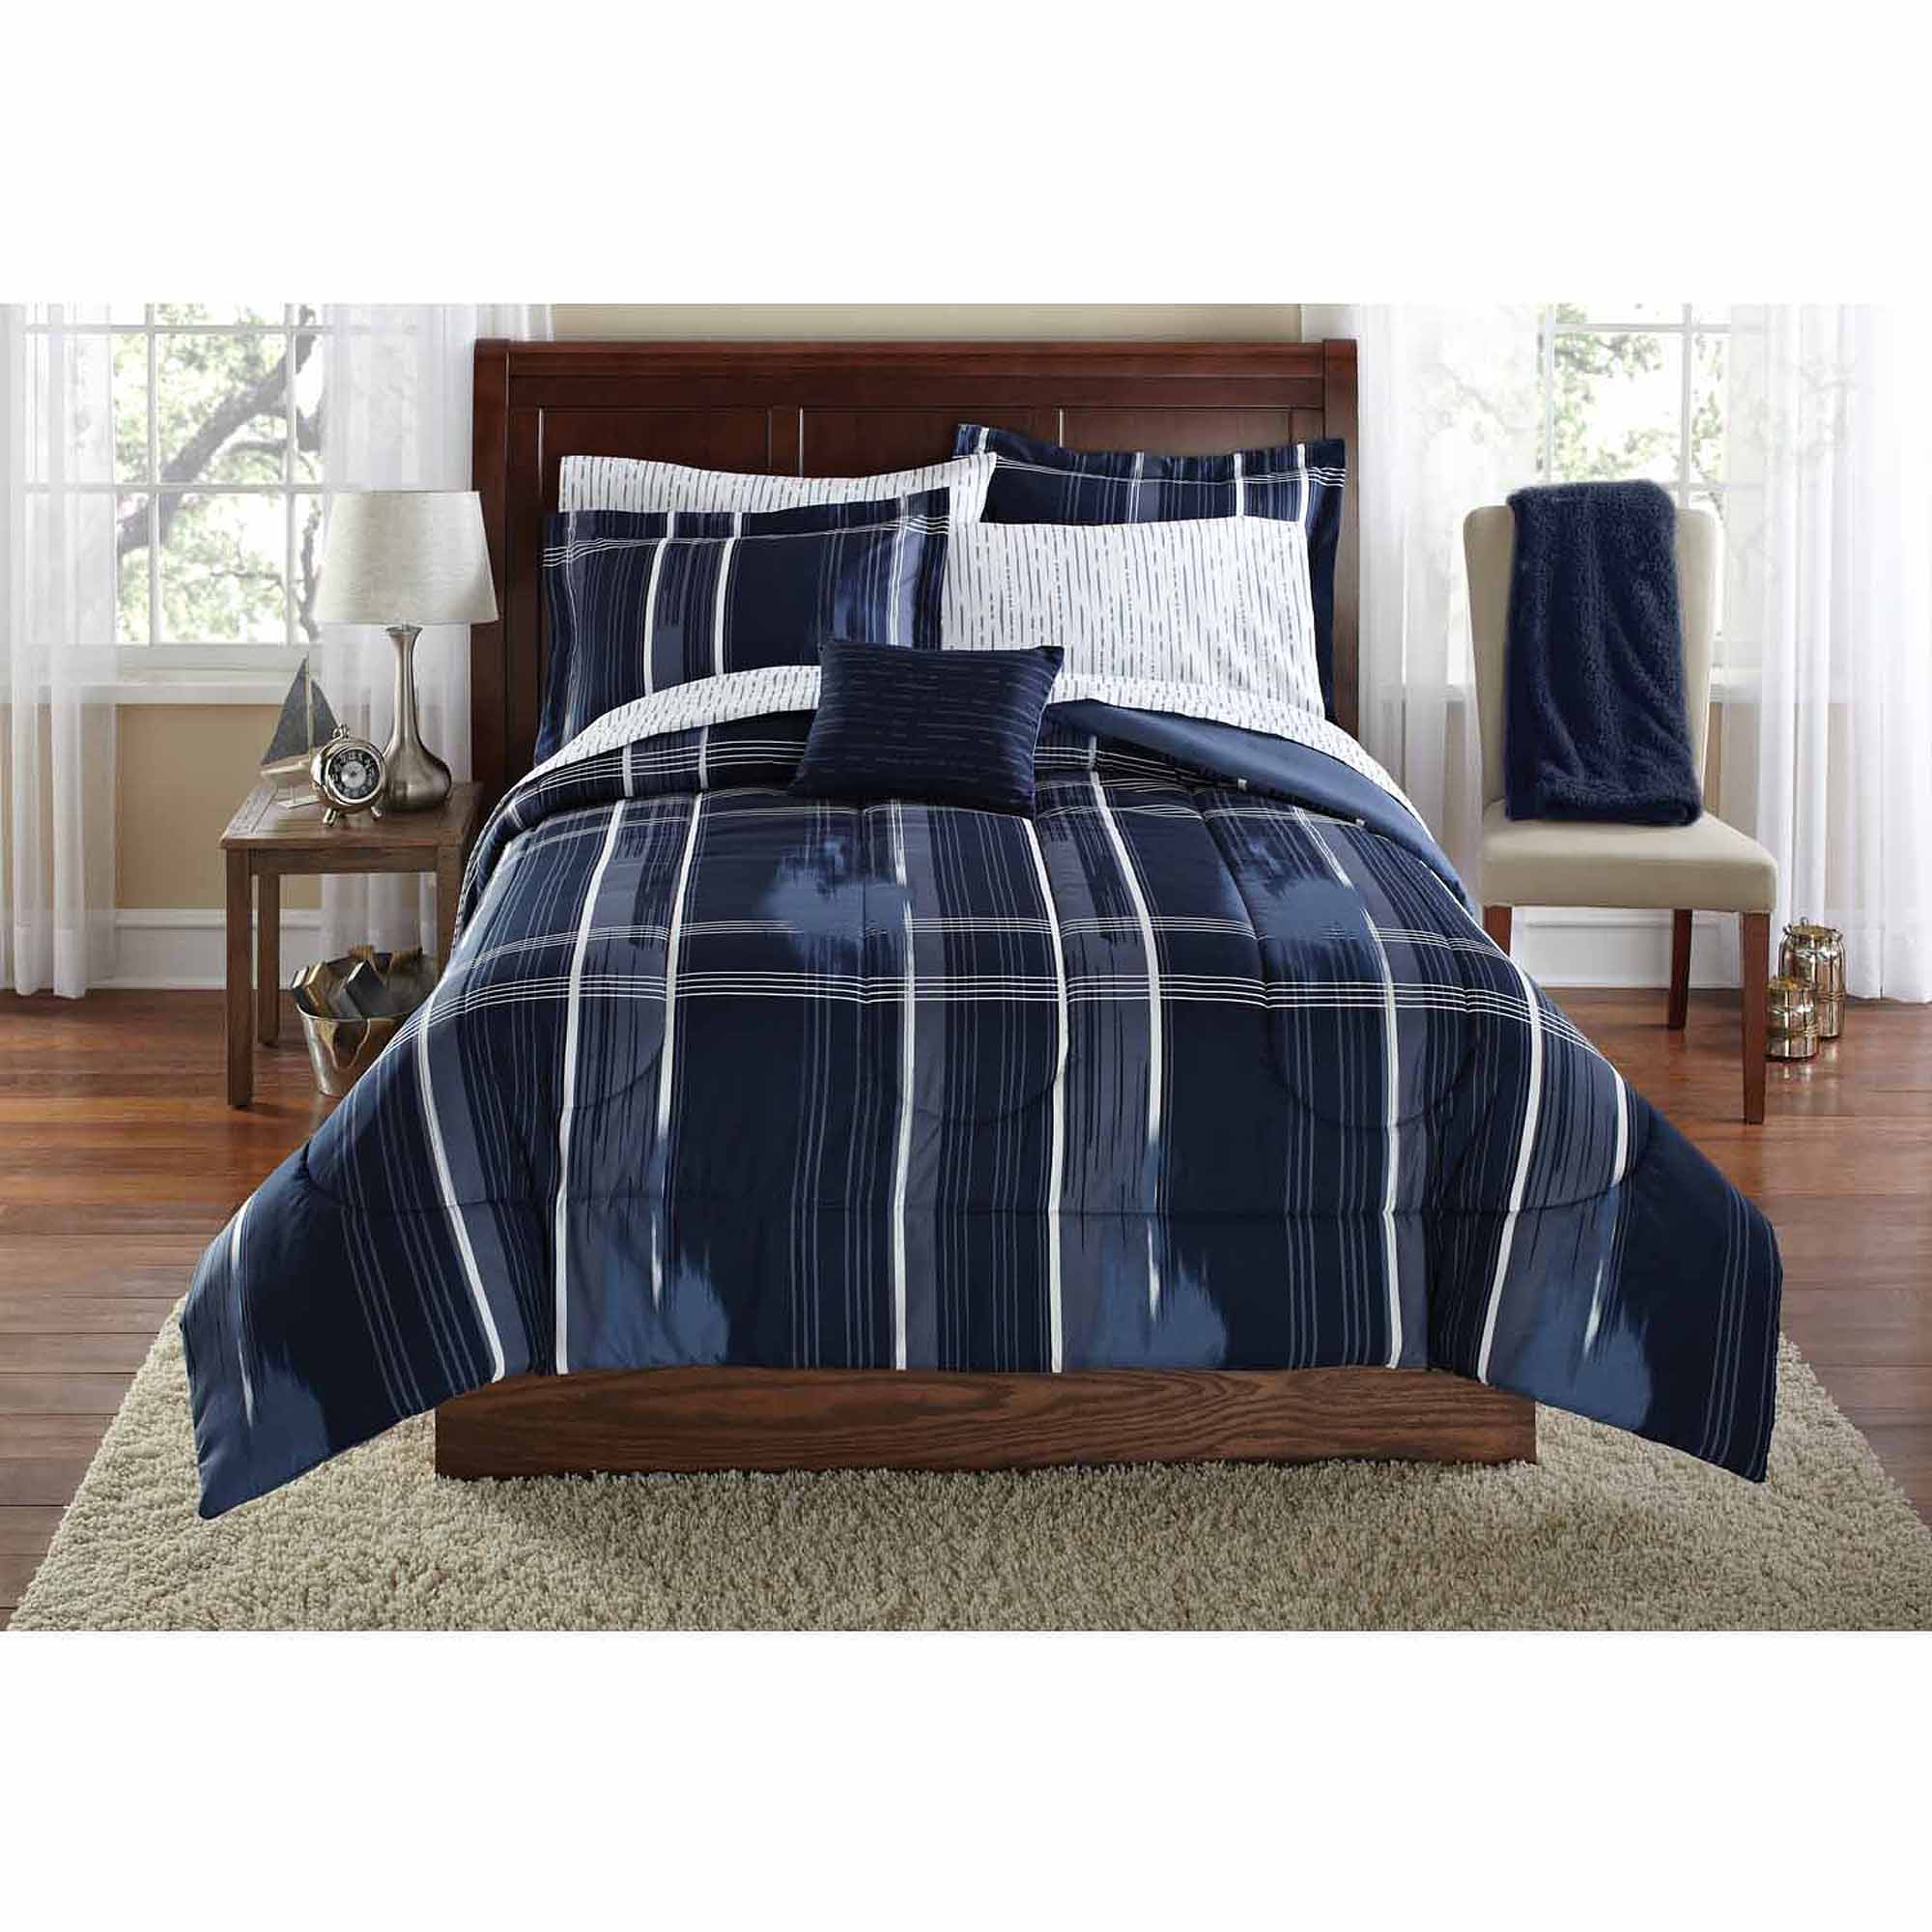 set bamboo ideas full slipcover for and canada size turquoise uk unique duvet twin of blue agreeable target cover queen covers comforter gorgeous captivating boho black most bedroom decoration using your ruched grey white gray on blush purple navy king xl comforters duvets paisley x